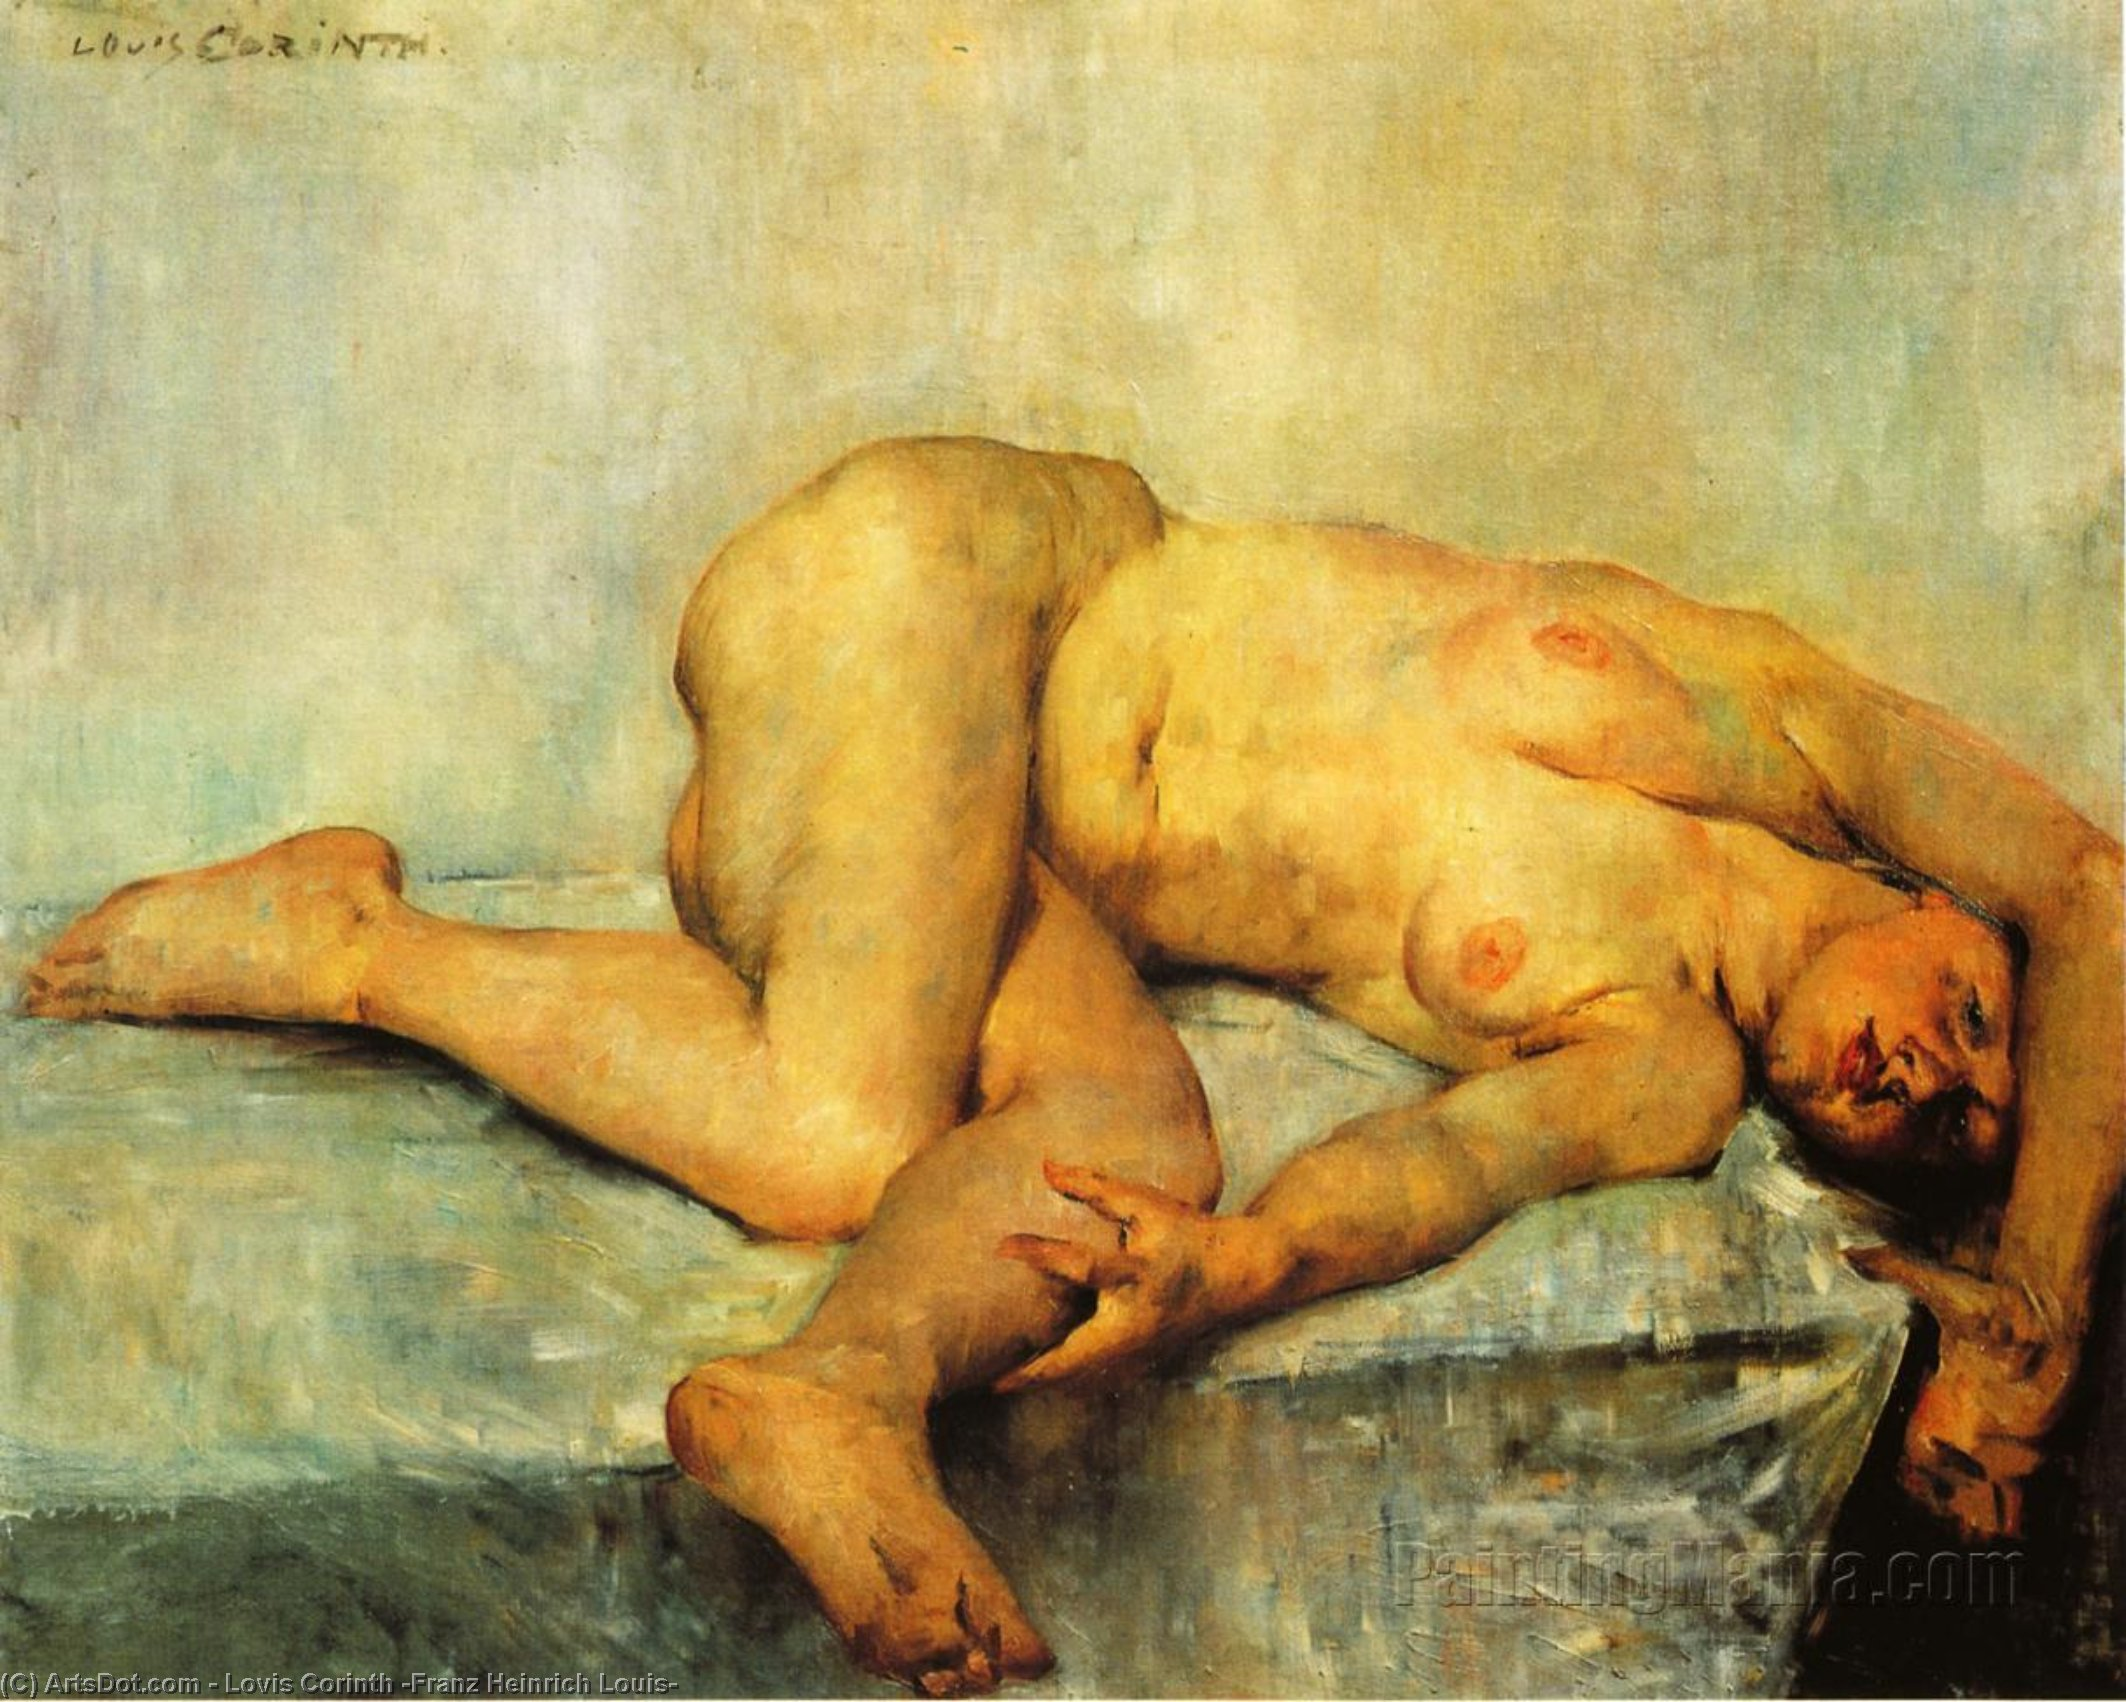 Reclining Female Nude, Oil On Canvas by Lovis Corinth (Franz Heinrich Louis) (1858-1925, Netherlands)